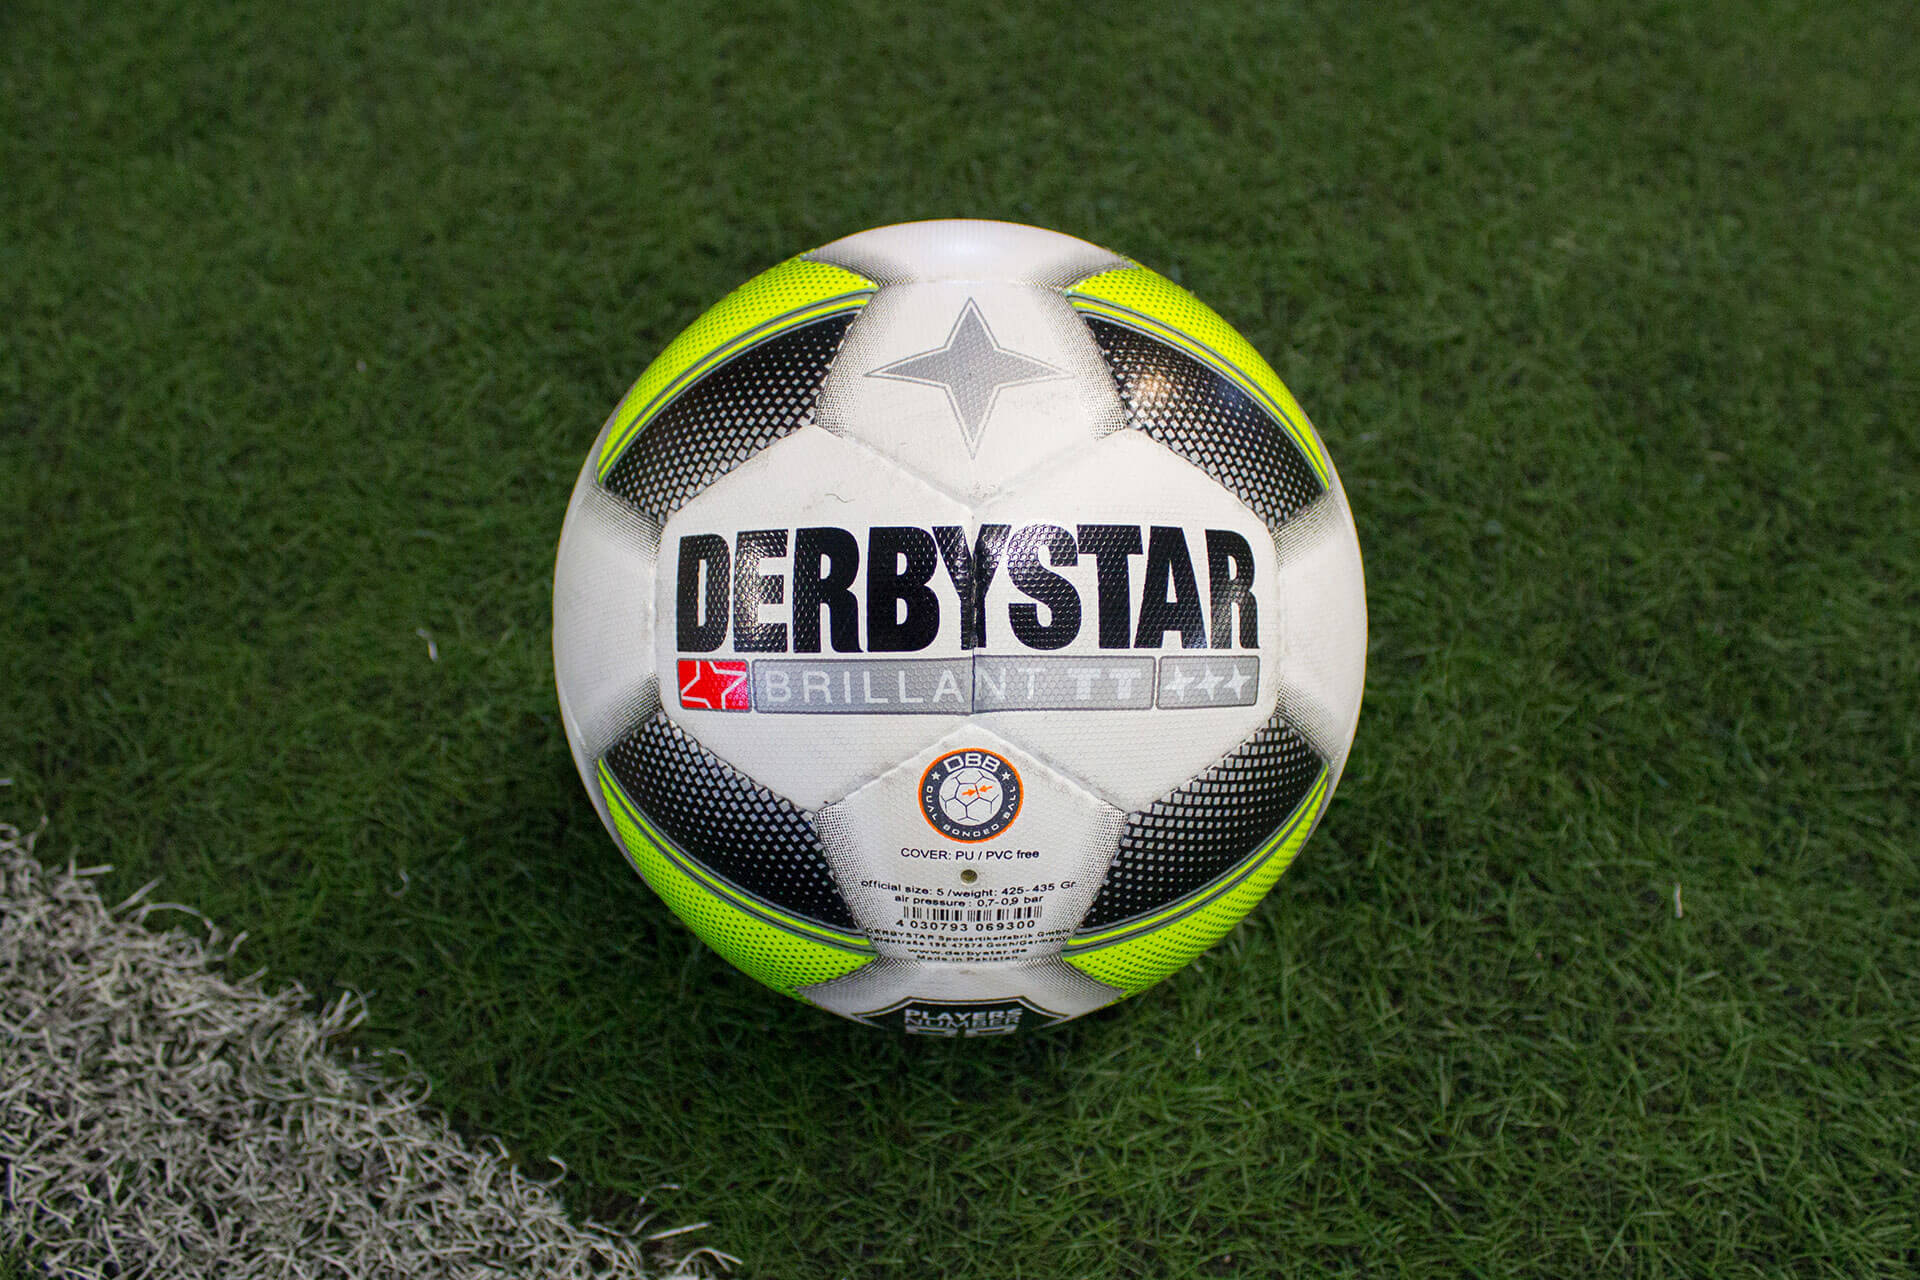 Derbystar Brillant TT DBB+